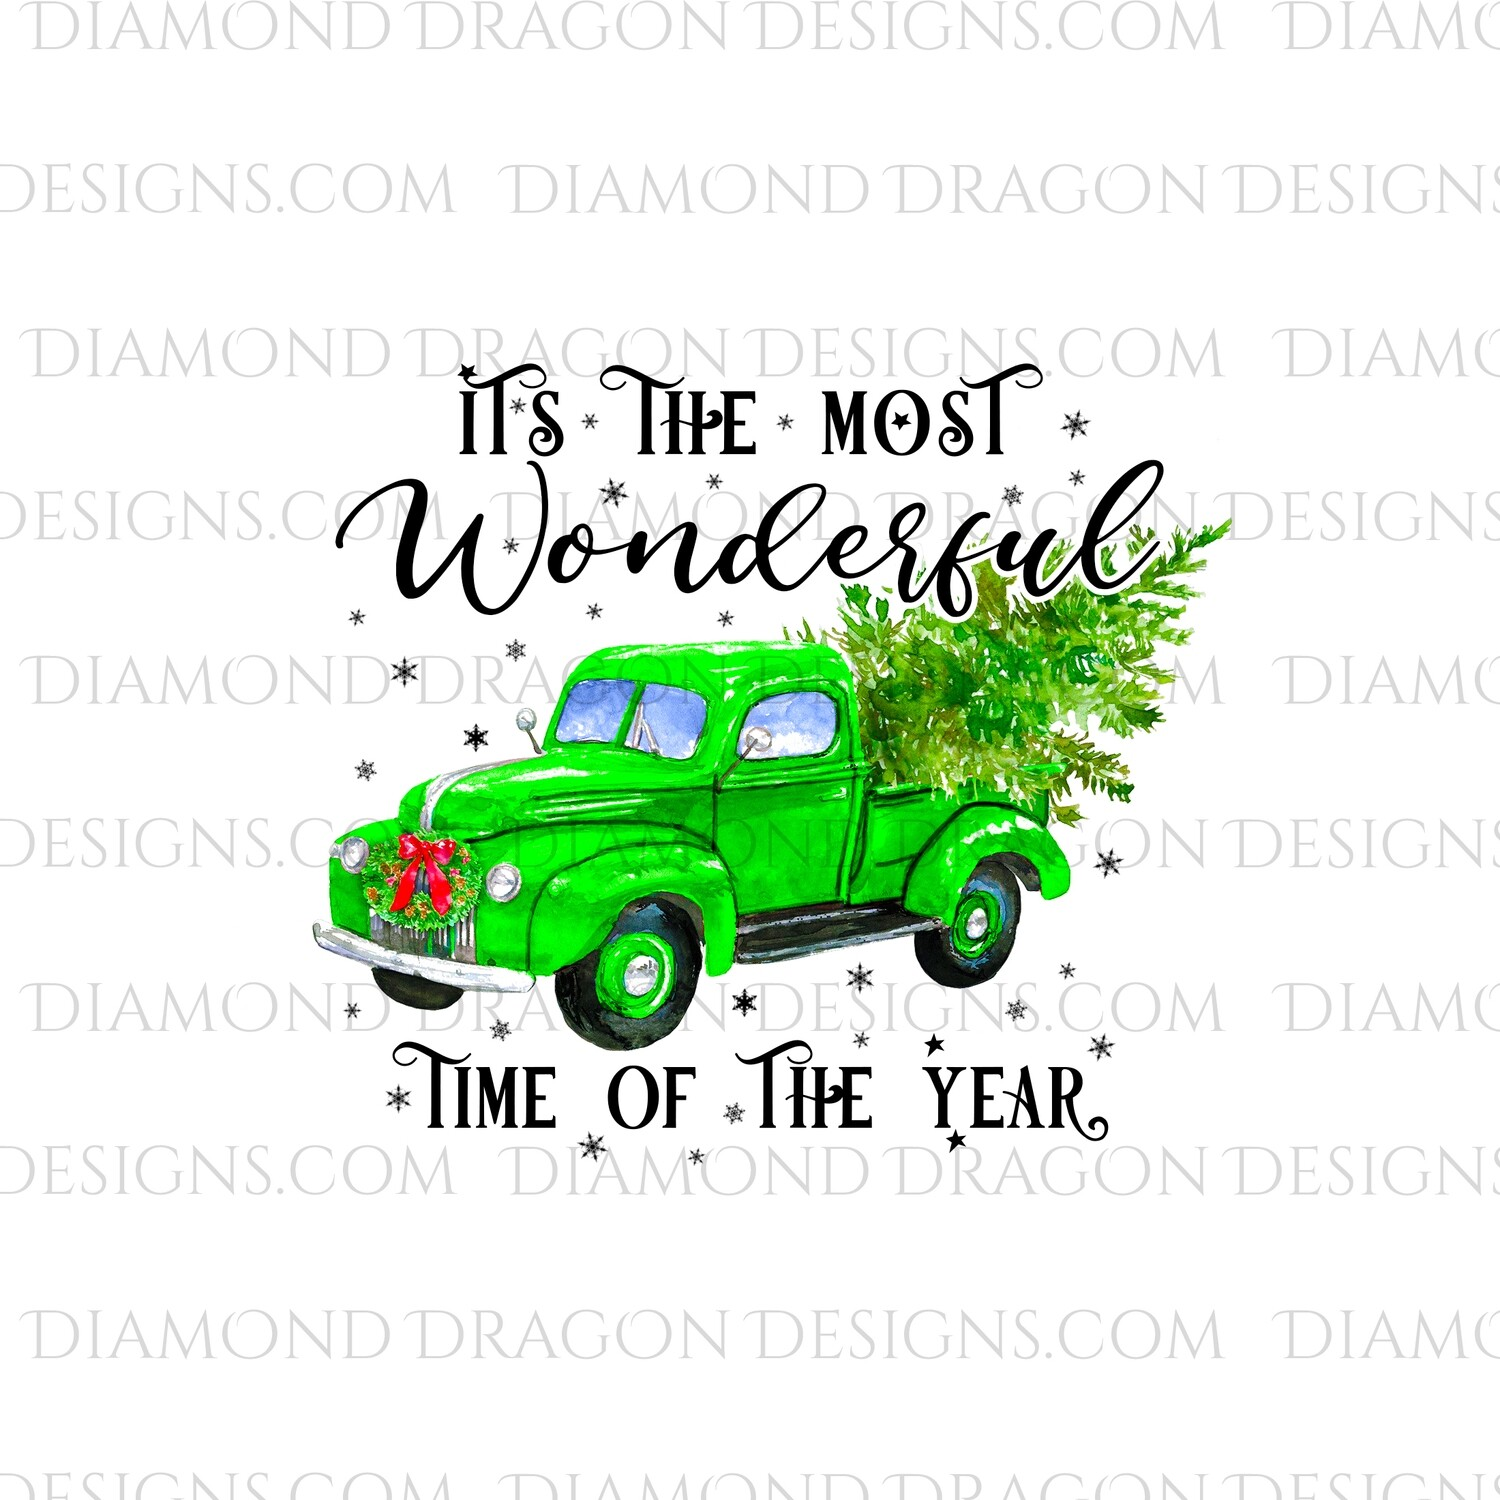 Christmas - Green Truck, Christmas Tree, It's the most wonderful time, Green Vintage Truck, Digital Image